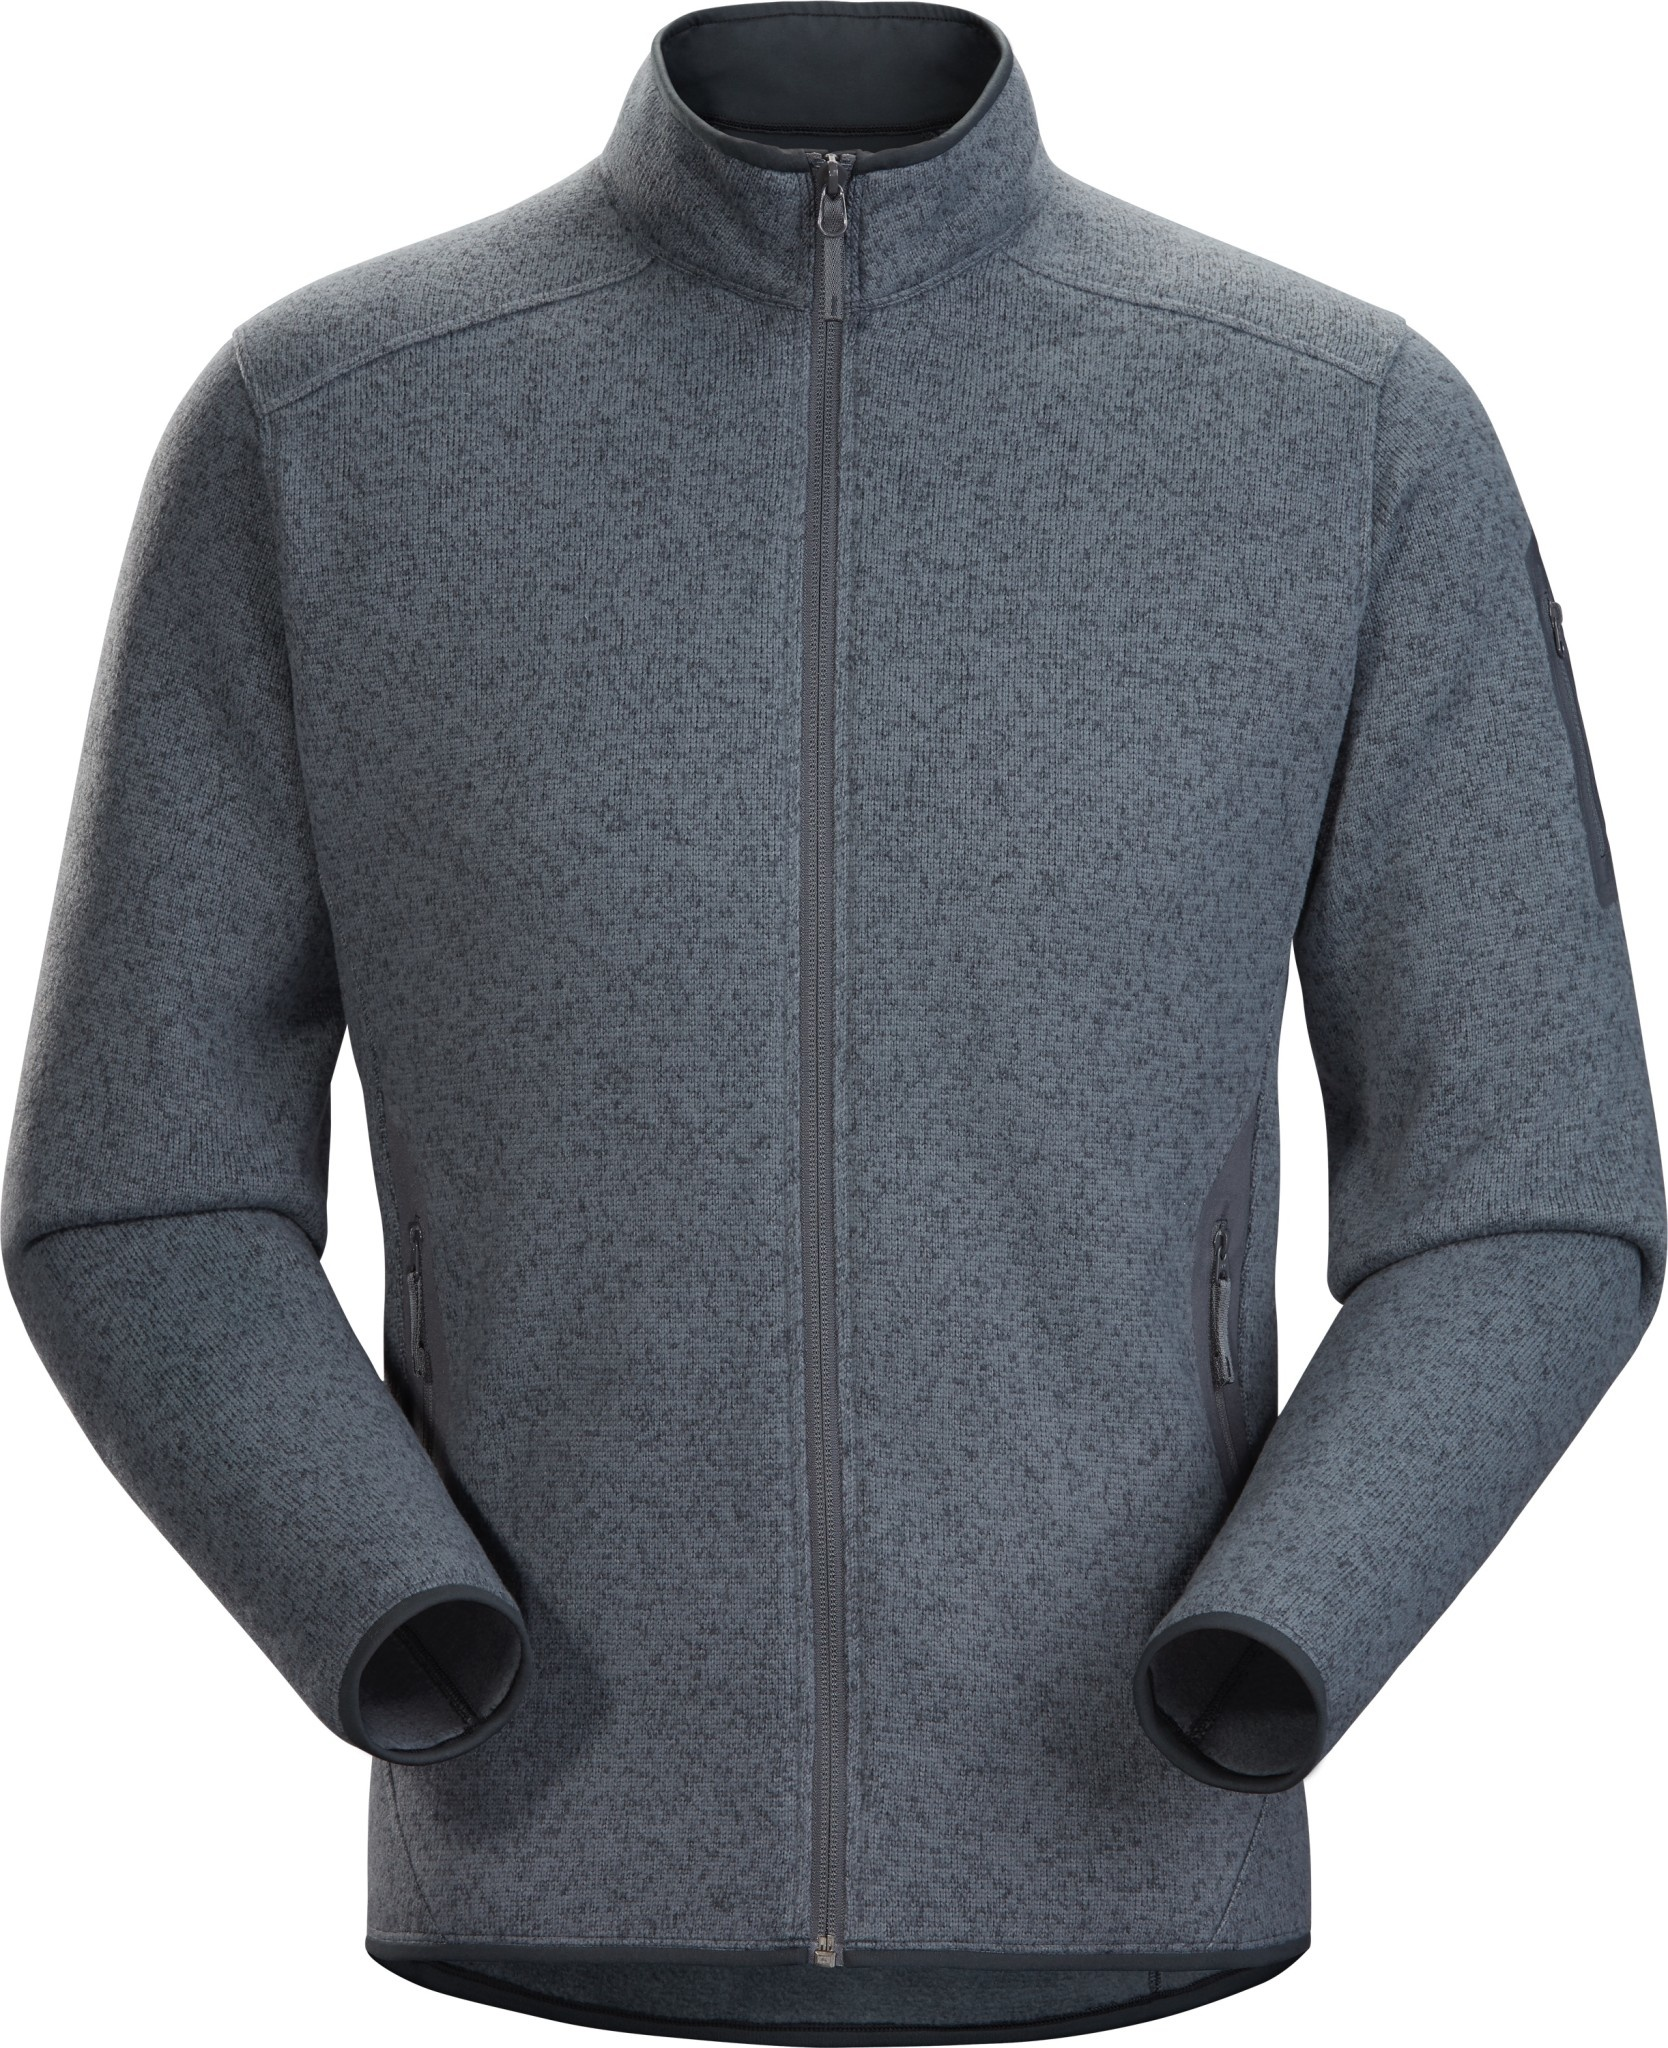 Arc'teryx Covert Cardigan Men's-2